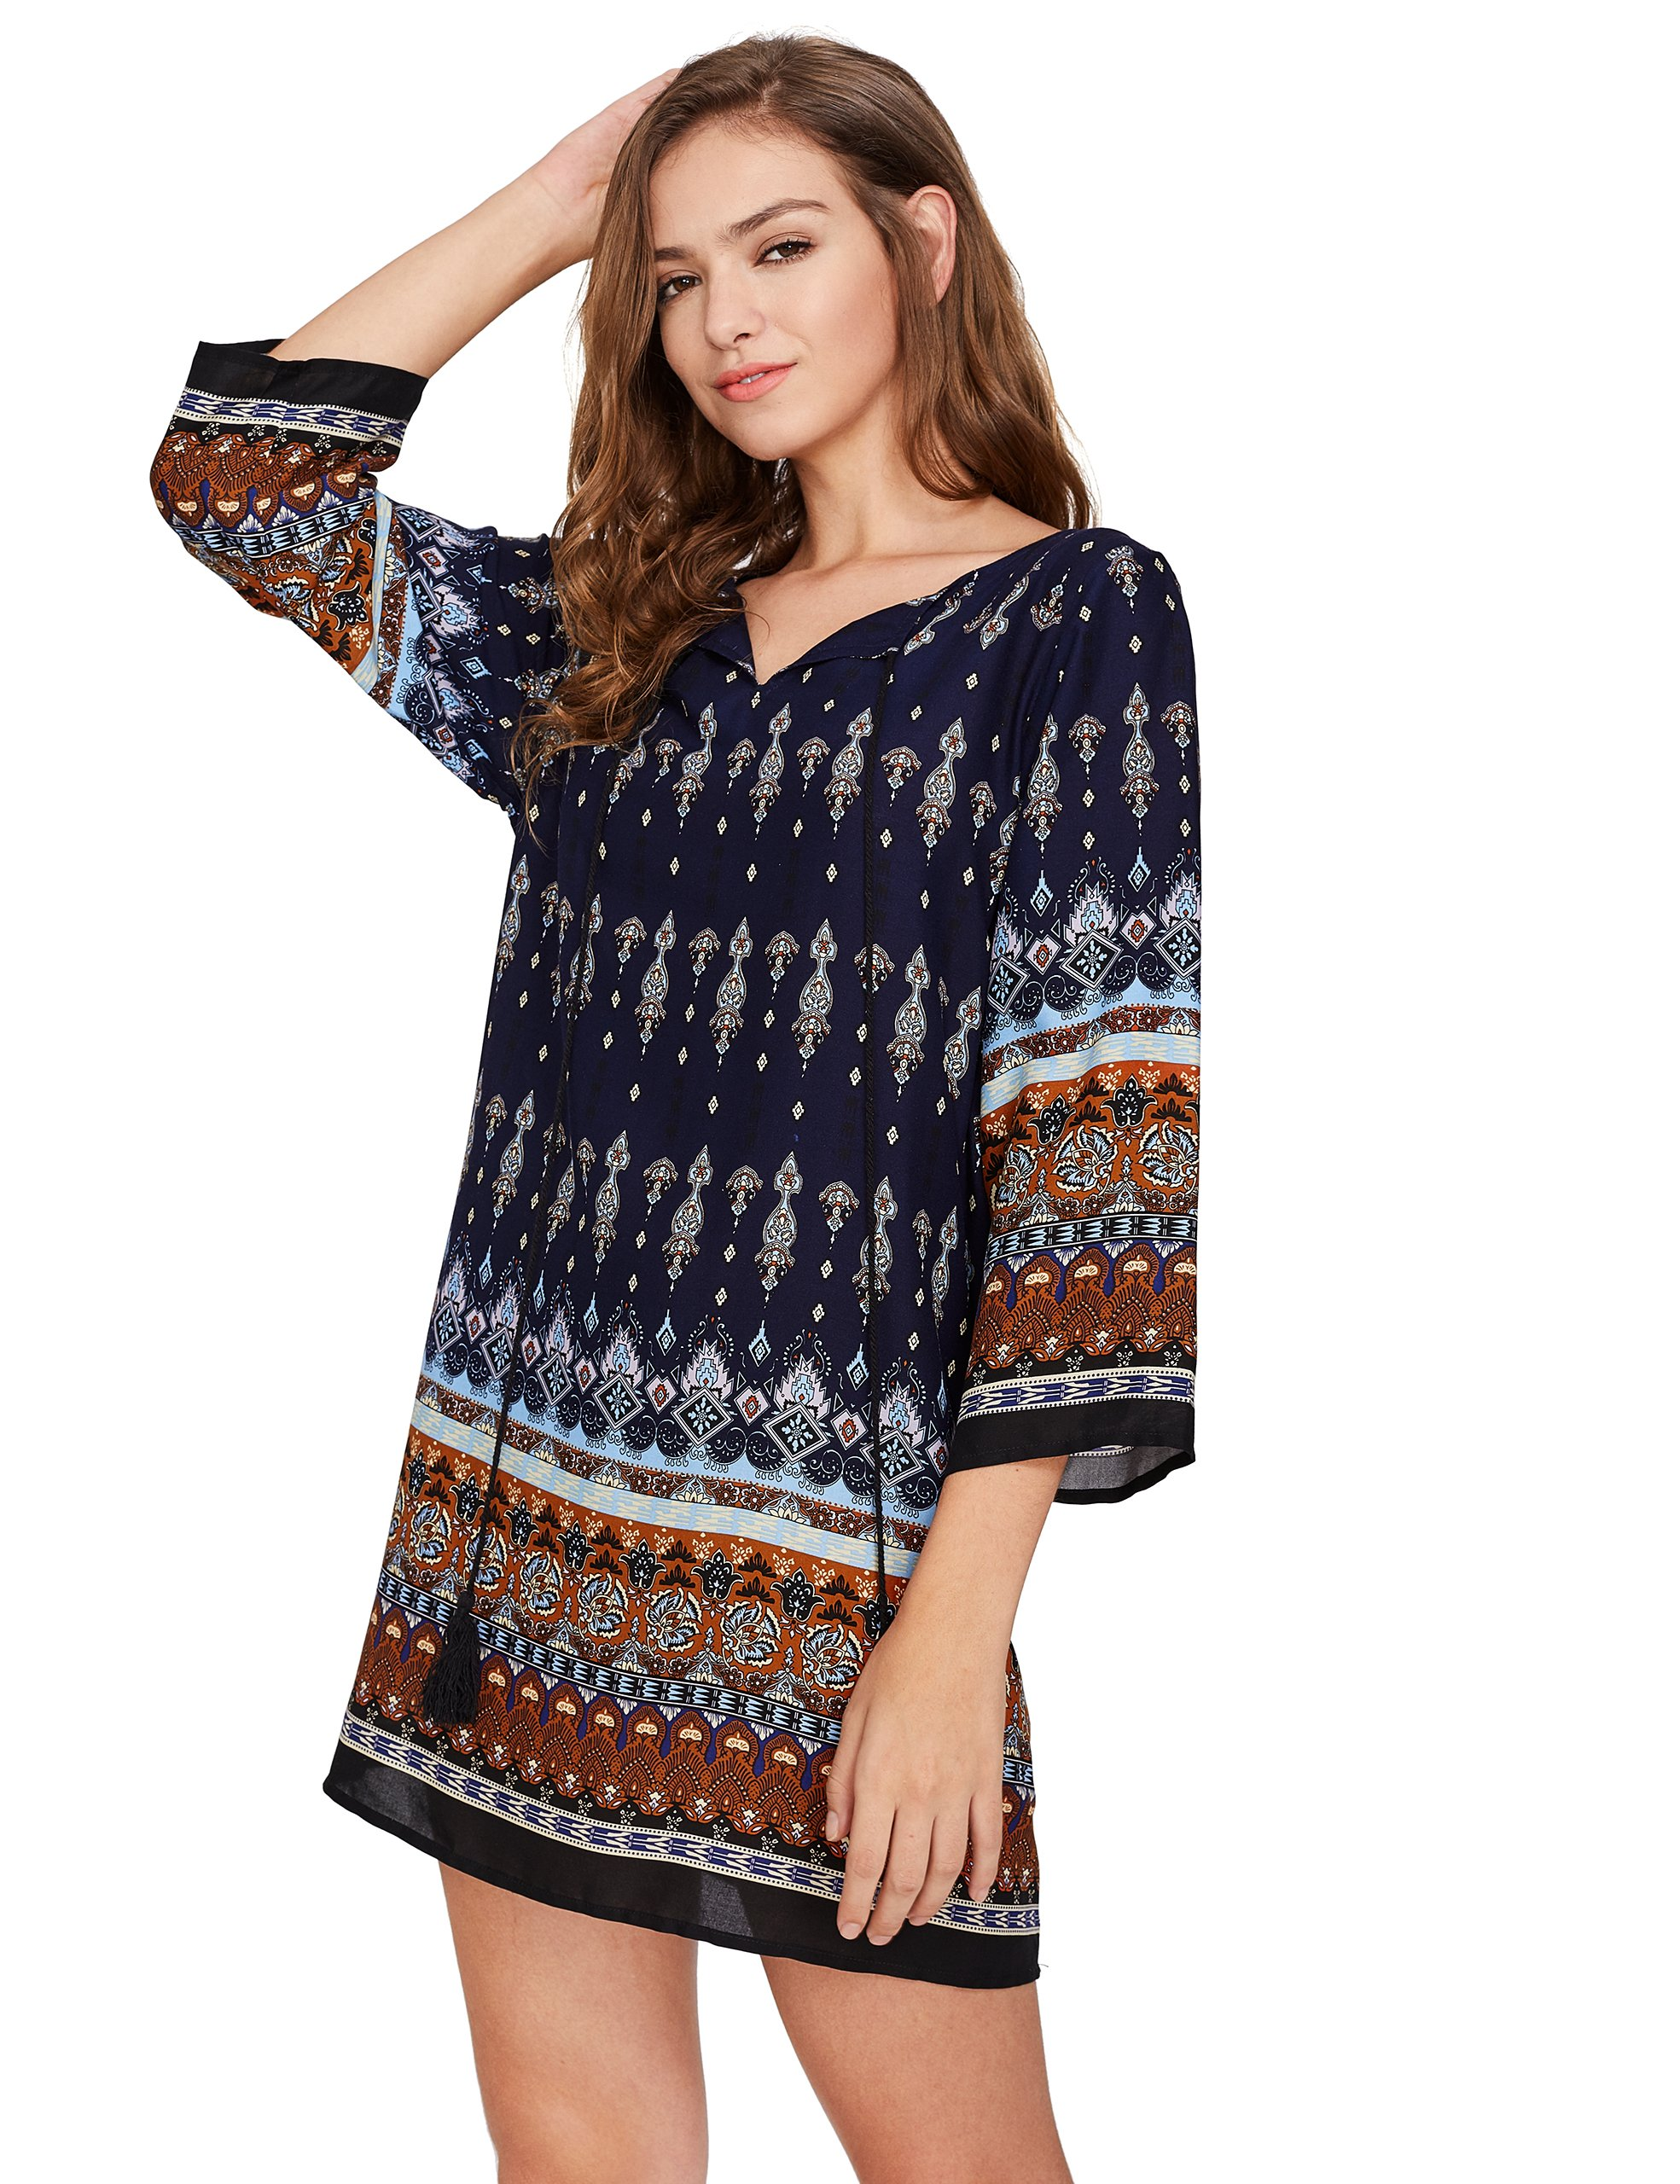 ROMWE Women's Boho Bohemian Tribal Print Summer Beach Dress Navy S by Romwe (Image #5)